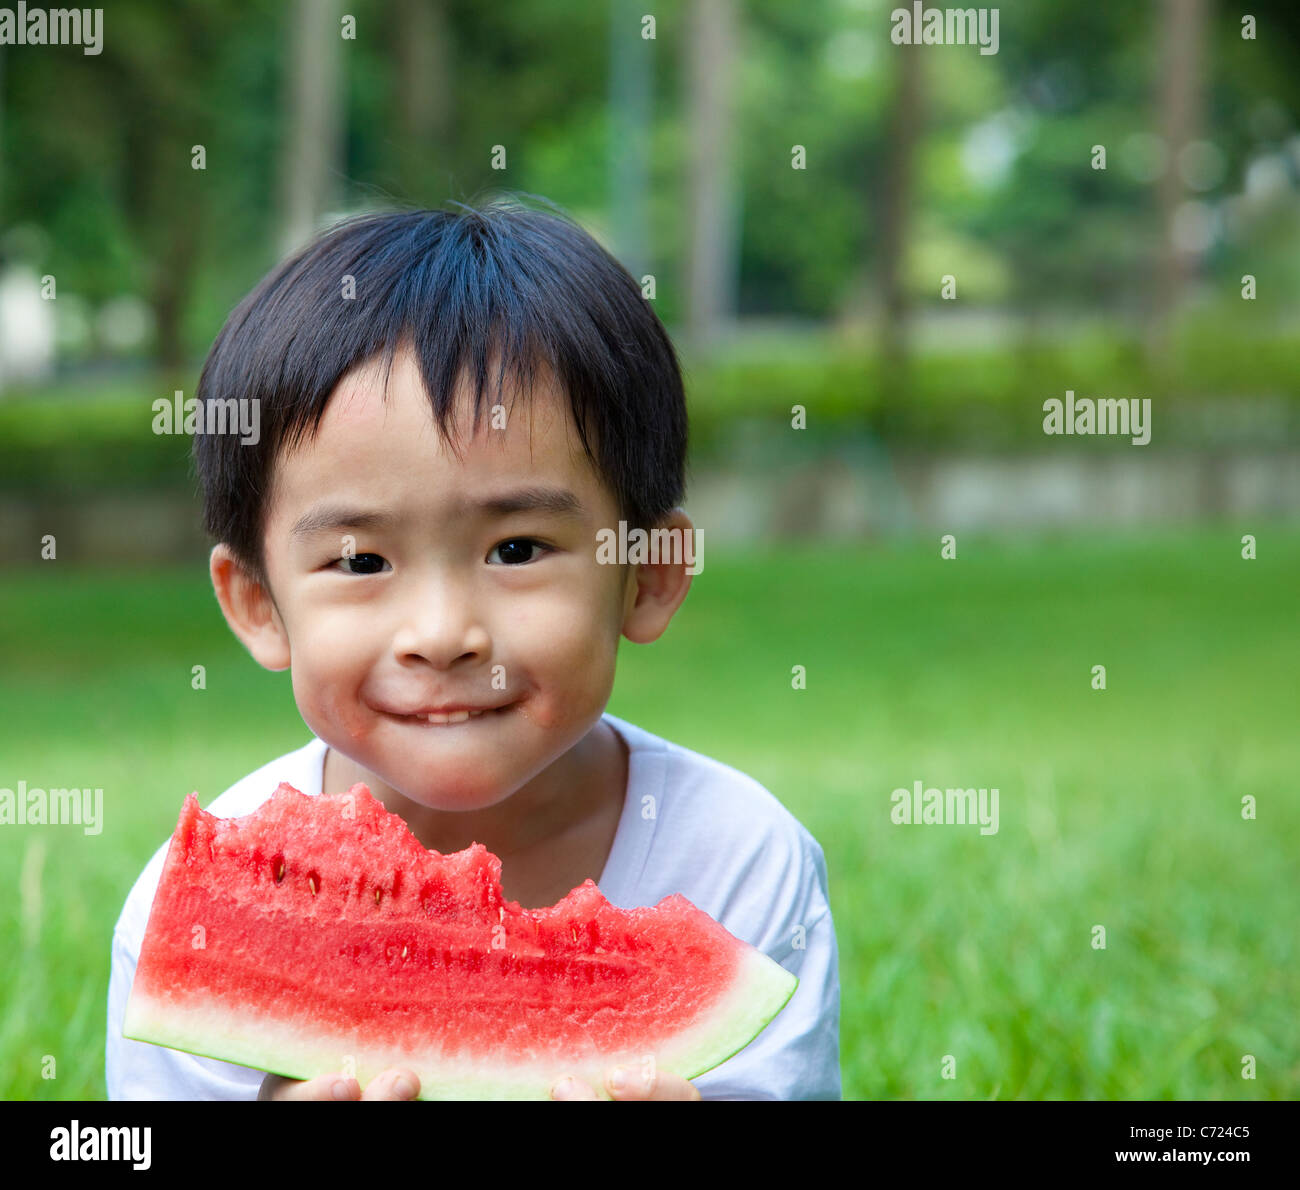 cute asian boy eating watermelon on the grass stock photo: 38770709